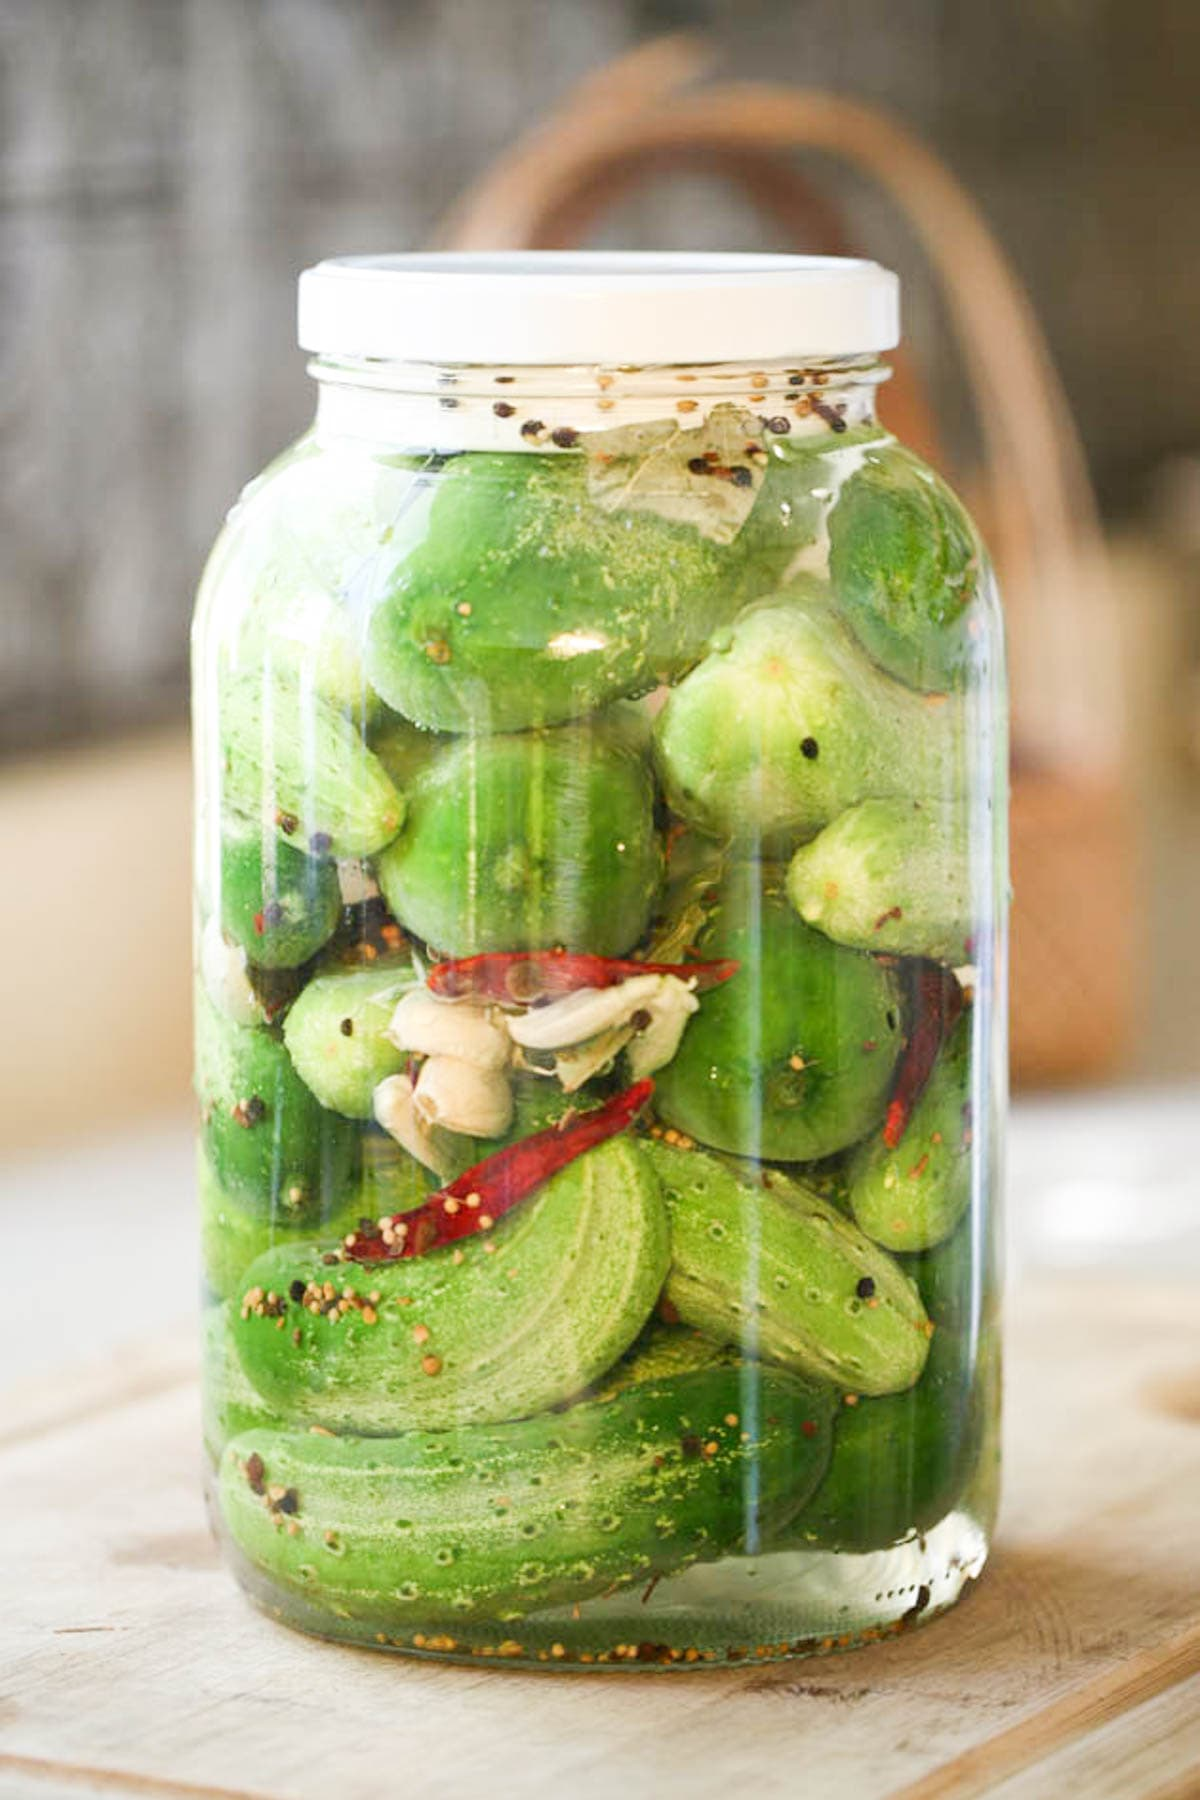 A jar of Israeli pickles or in other words, fermented cucumbers.